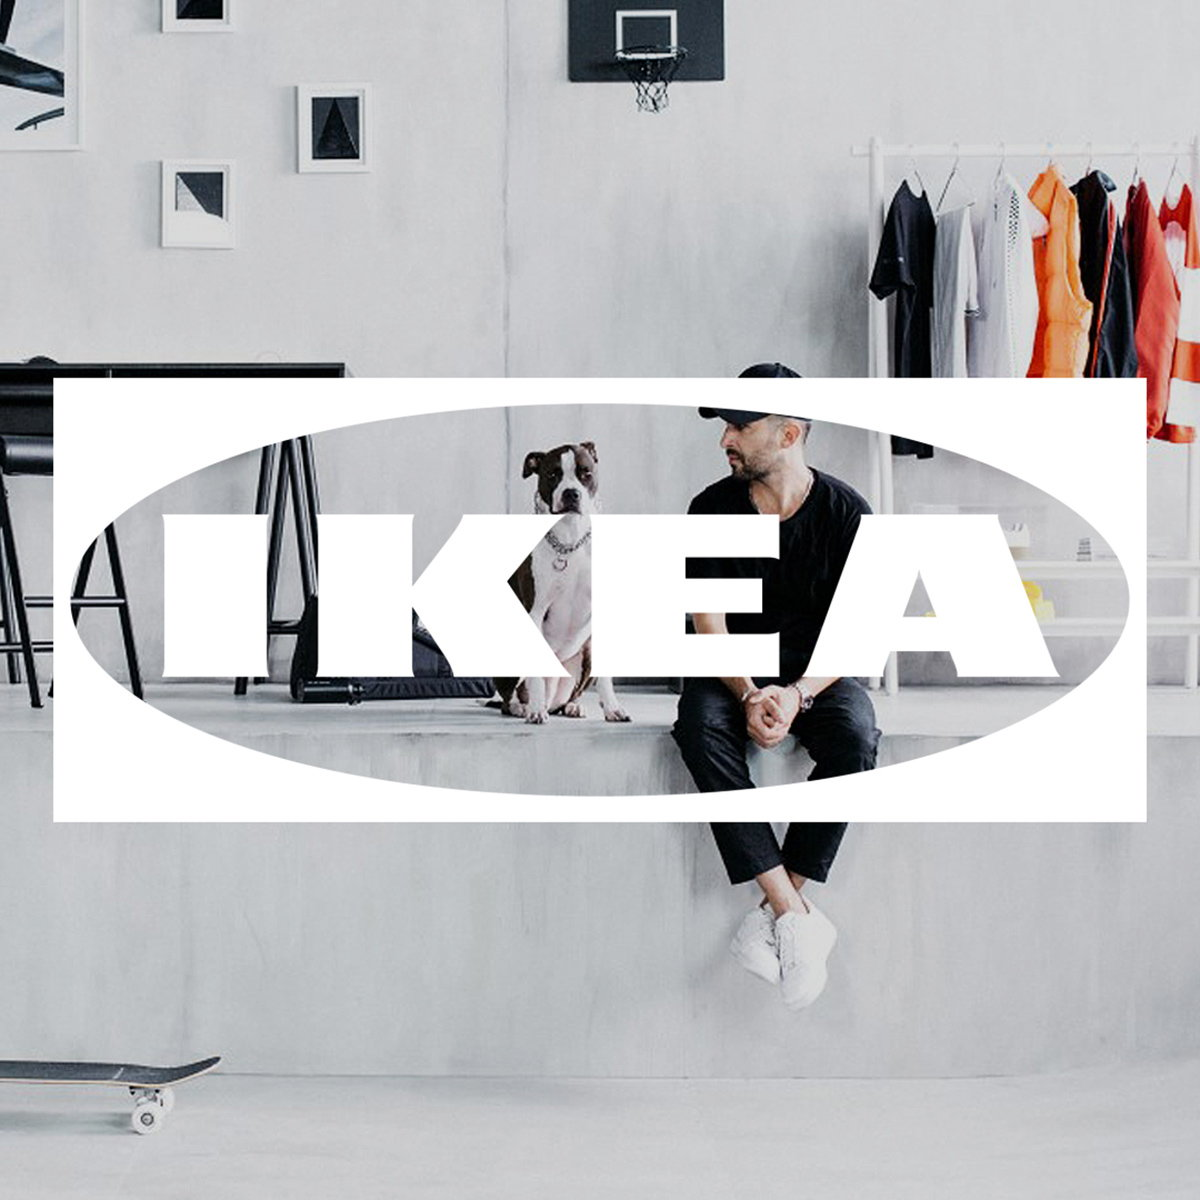 72andSunny Amsterdam Creates New Additional Dynamic Logo for IKEA